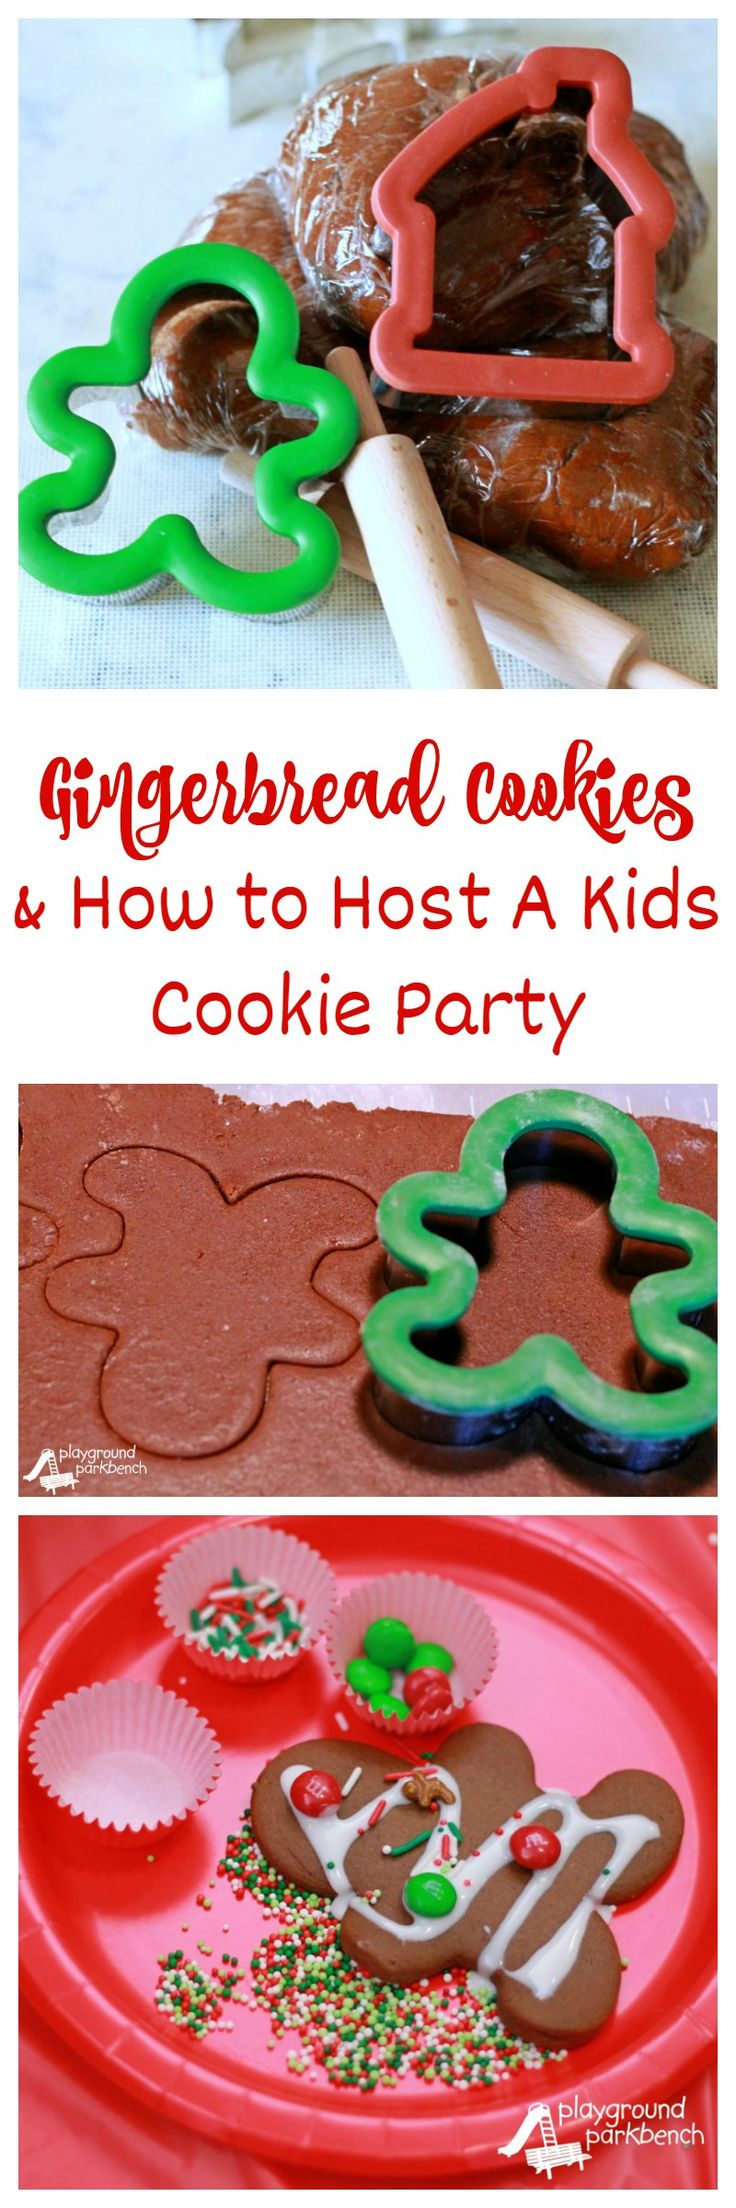 My family's favorite recipe for Gingerbread Cookies and tips for hosting a cookie decorating party with preschoolers and toddlers, an annual Christmas tradition